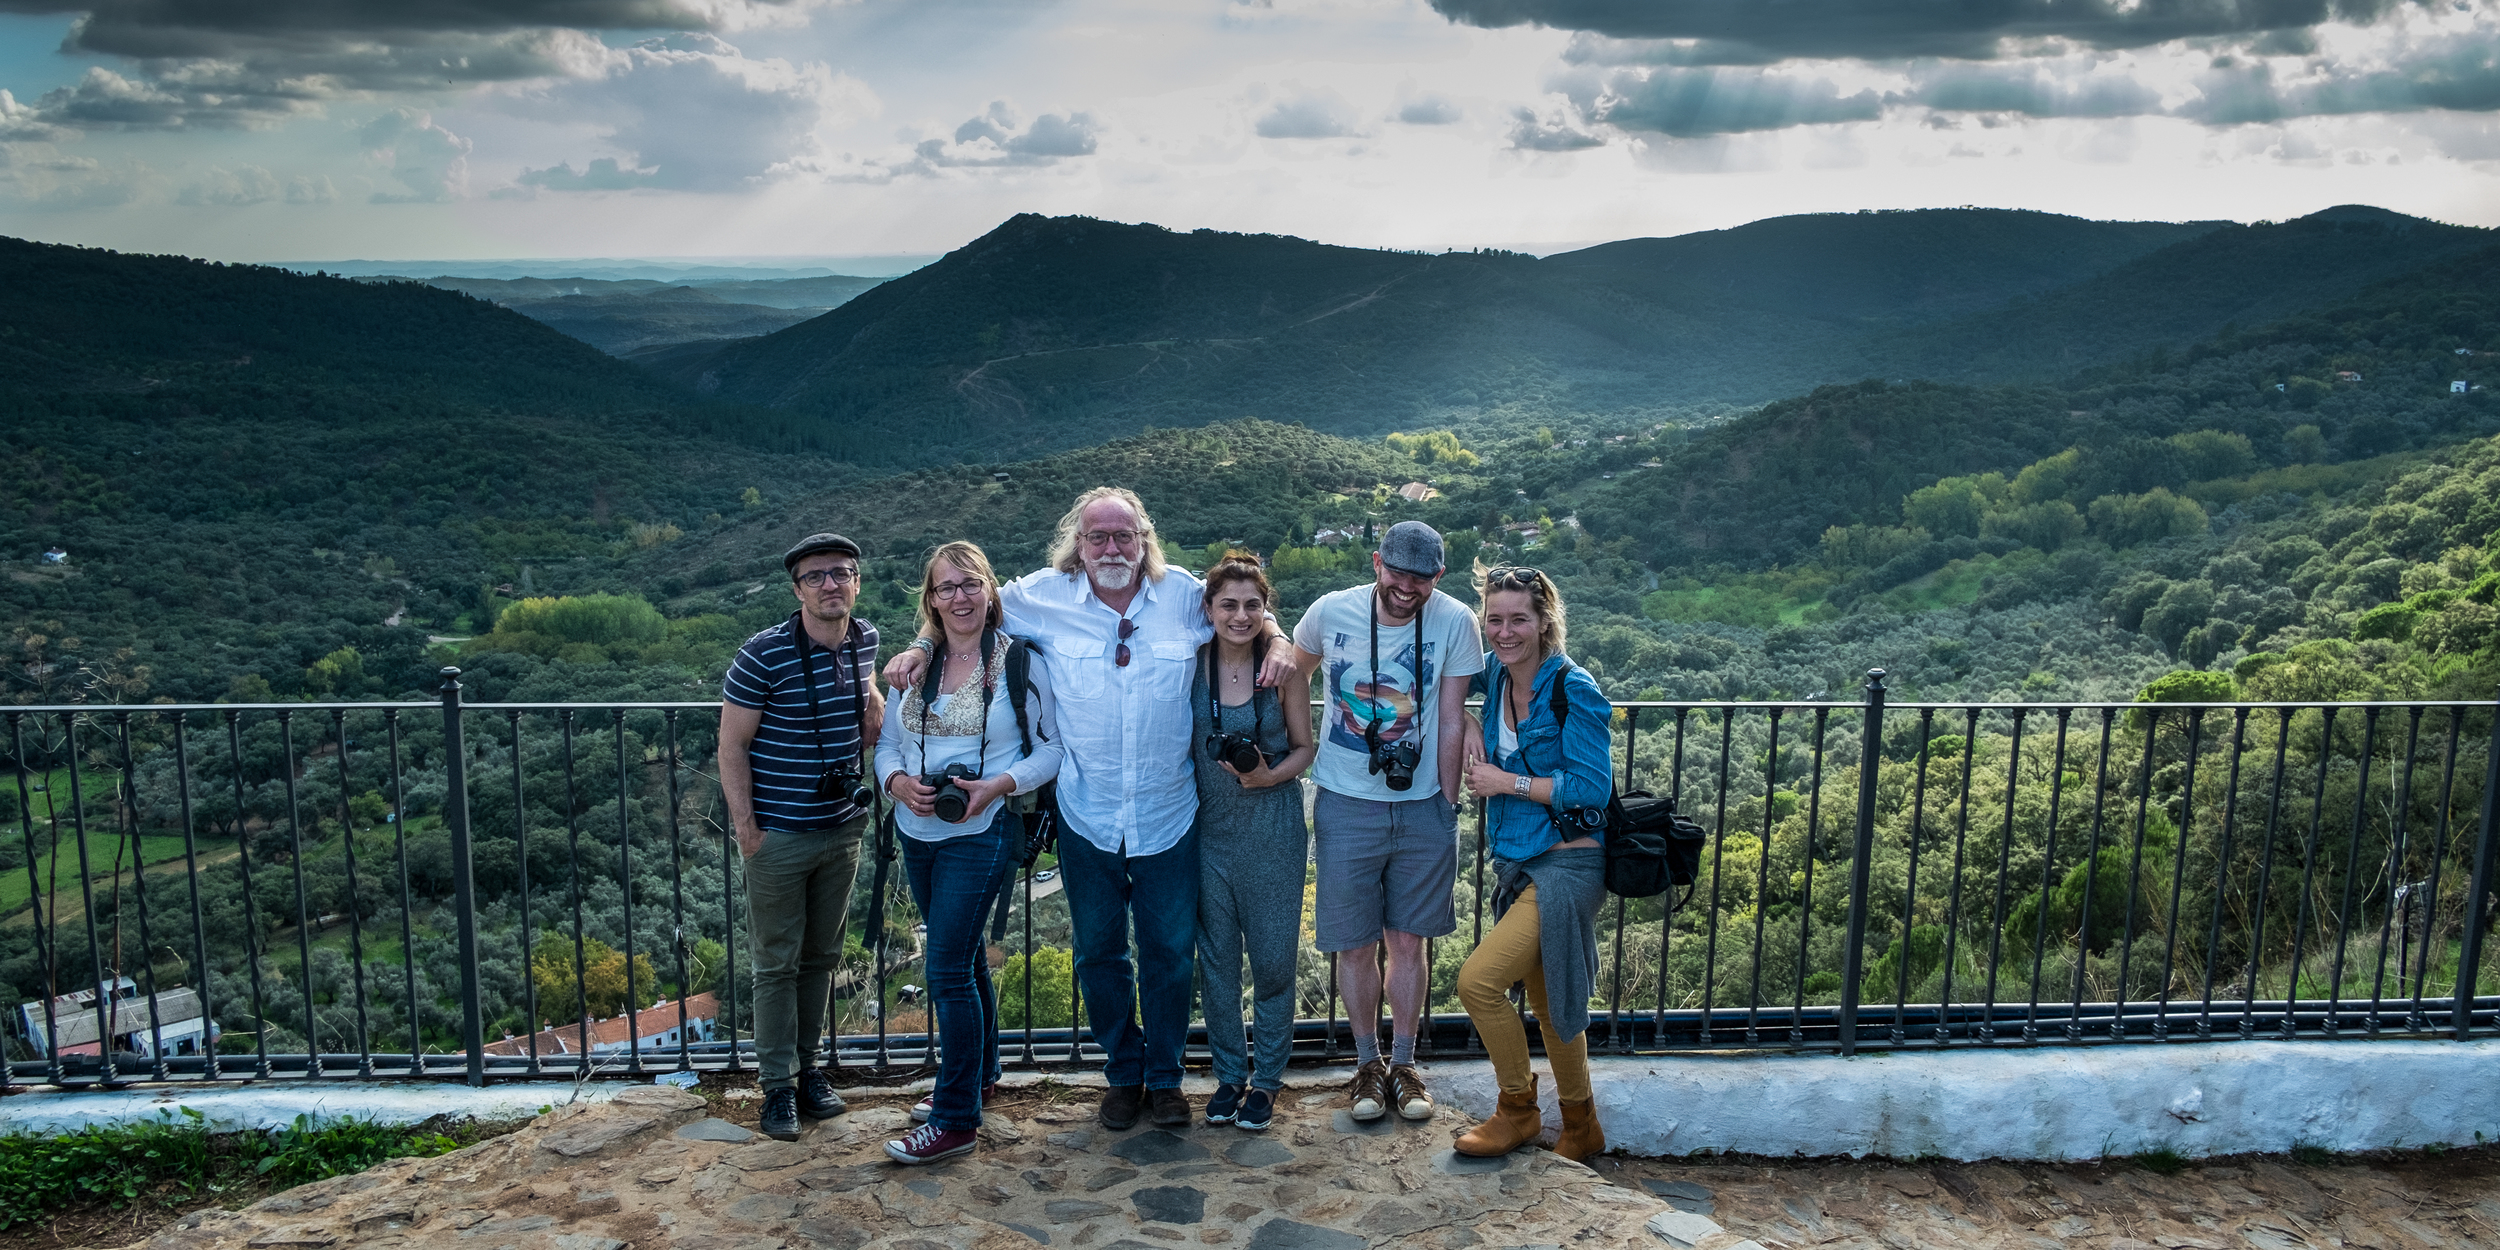 Tim Clinch with food and travel photography workshop participants in Andalucia, Spain